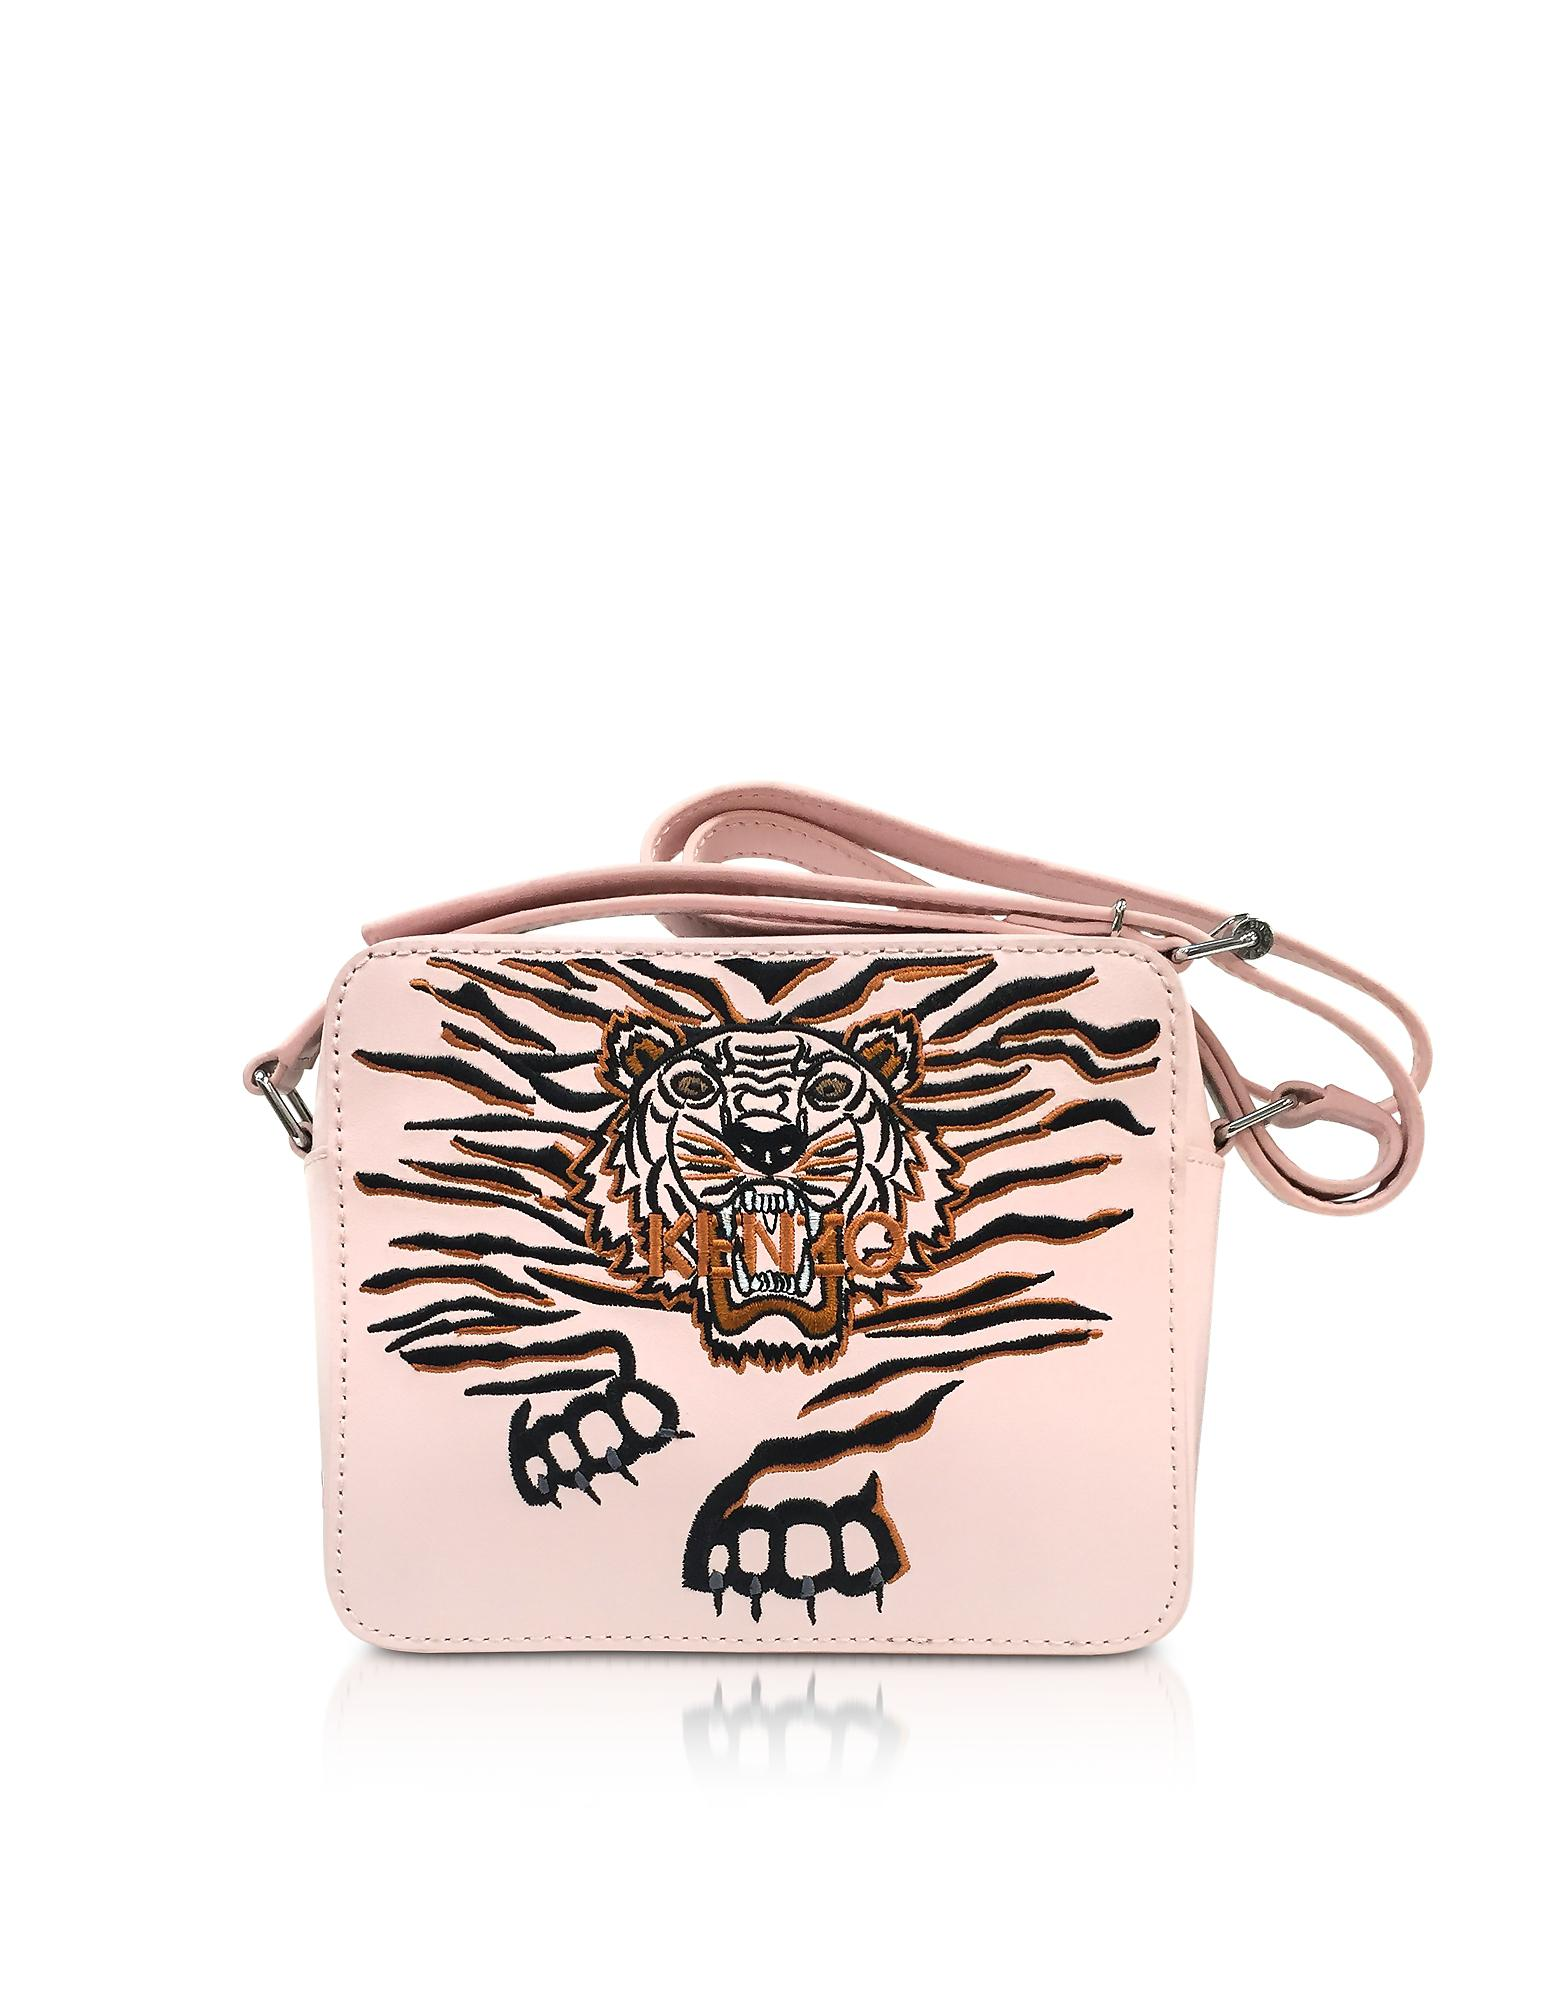 Kenzo Handbags, Faded Leather Geo Tiger Camera Bag w/Tiger Embroidery